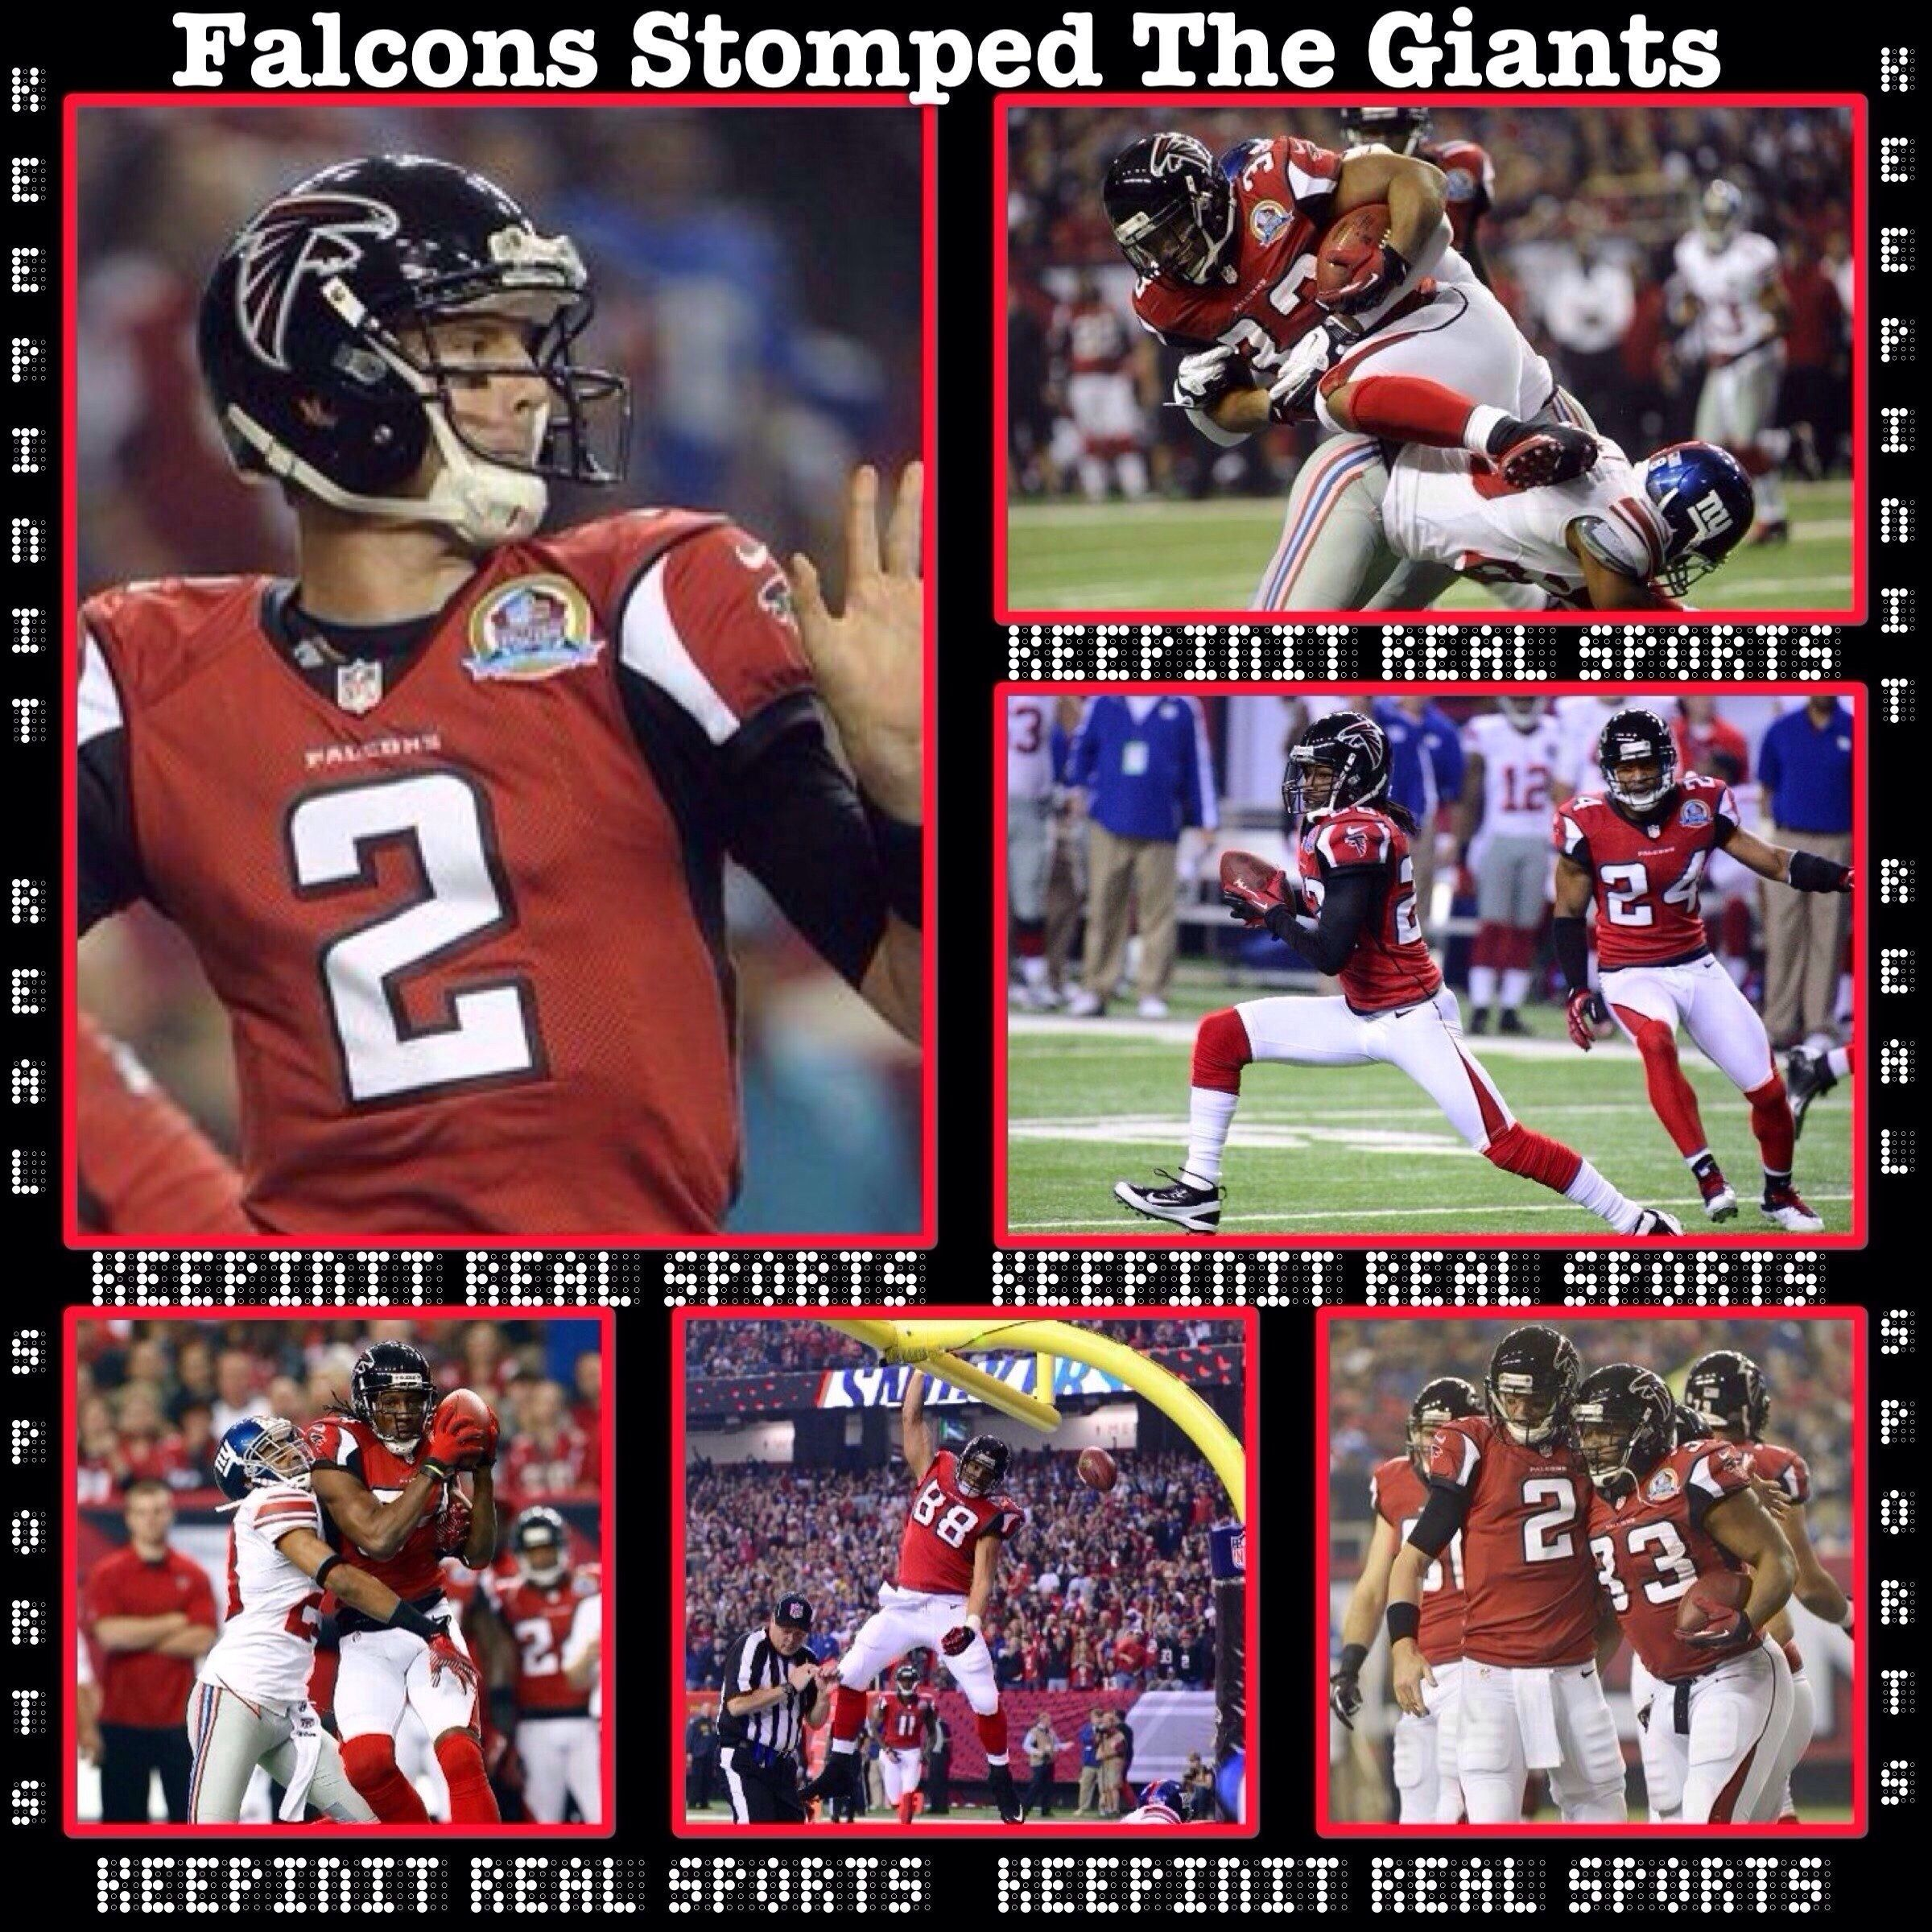 Keepinit Real Nfl Stats Giants Vs Falcons Giants 0 8 6 3 4 Away Falcons 34 12 2 7 0 Home Final Top Performers Passing M Nfl Stats Falcons Sports